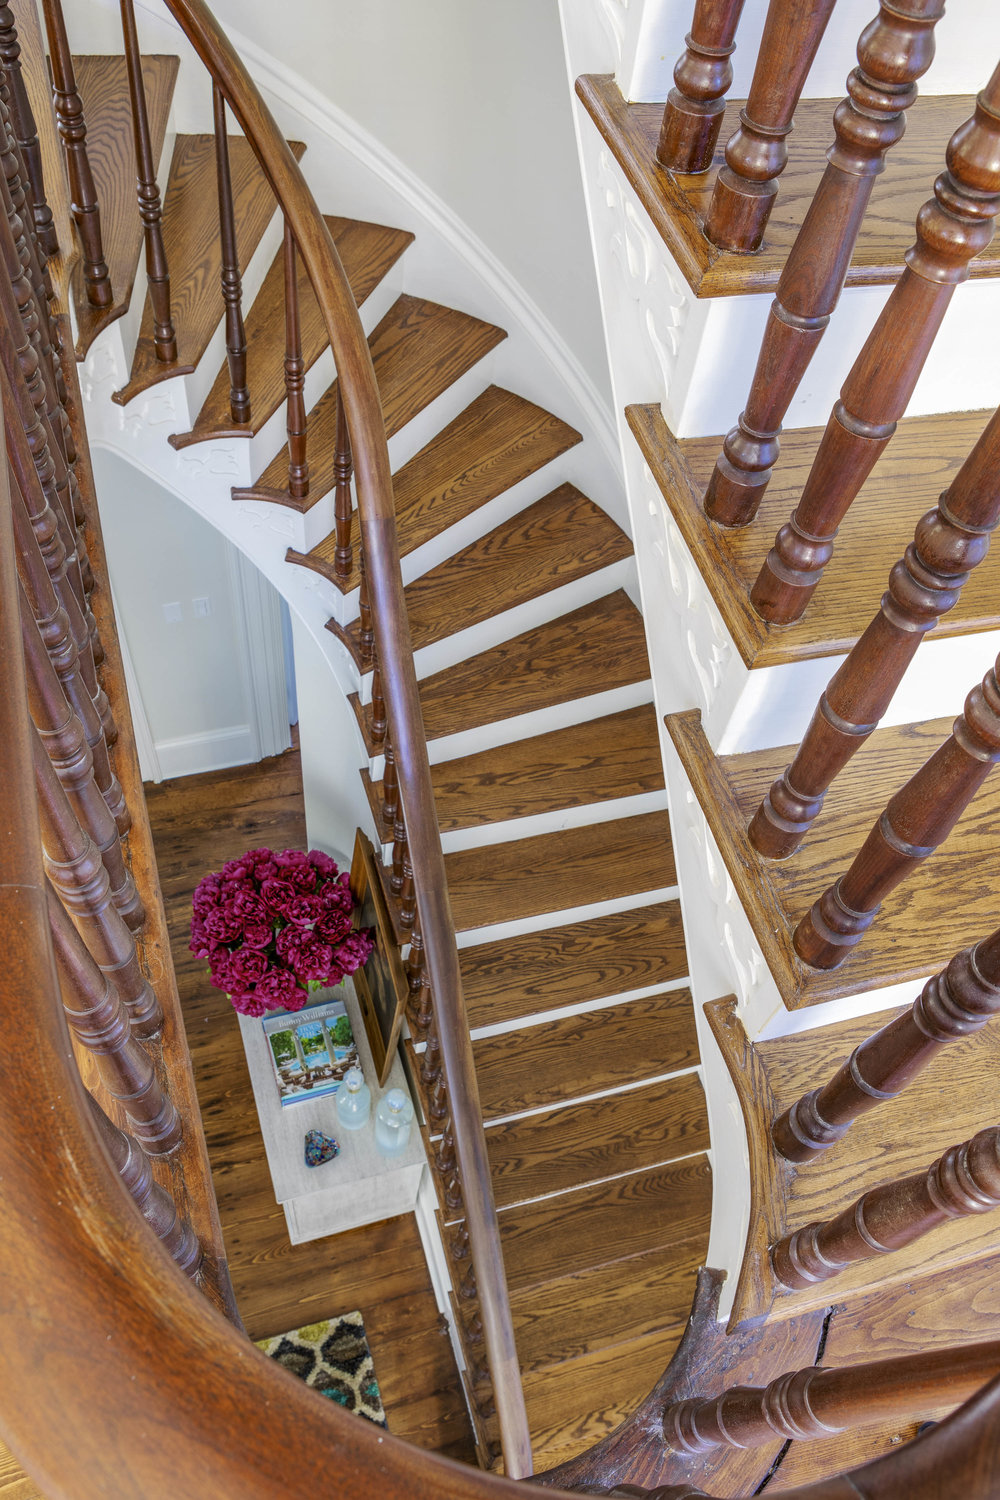 Digs Design, Digs, Digs Design Company, Interior Design, Jocelyn Chiappone, Rhode Island, Newport, Providence, Stairway, Stair case